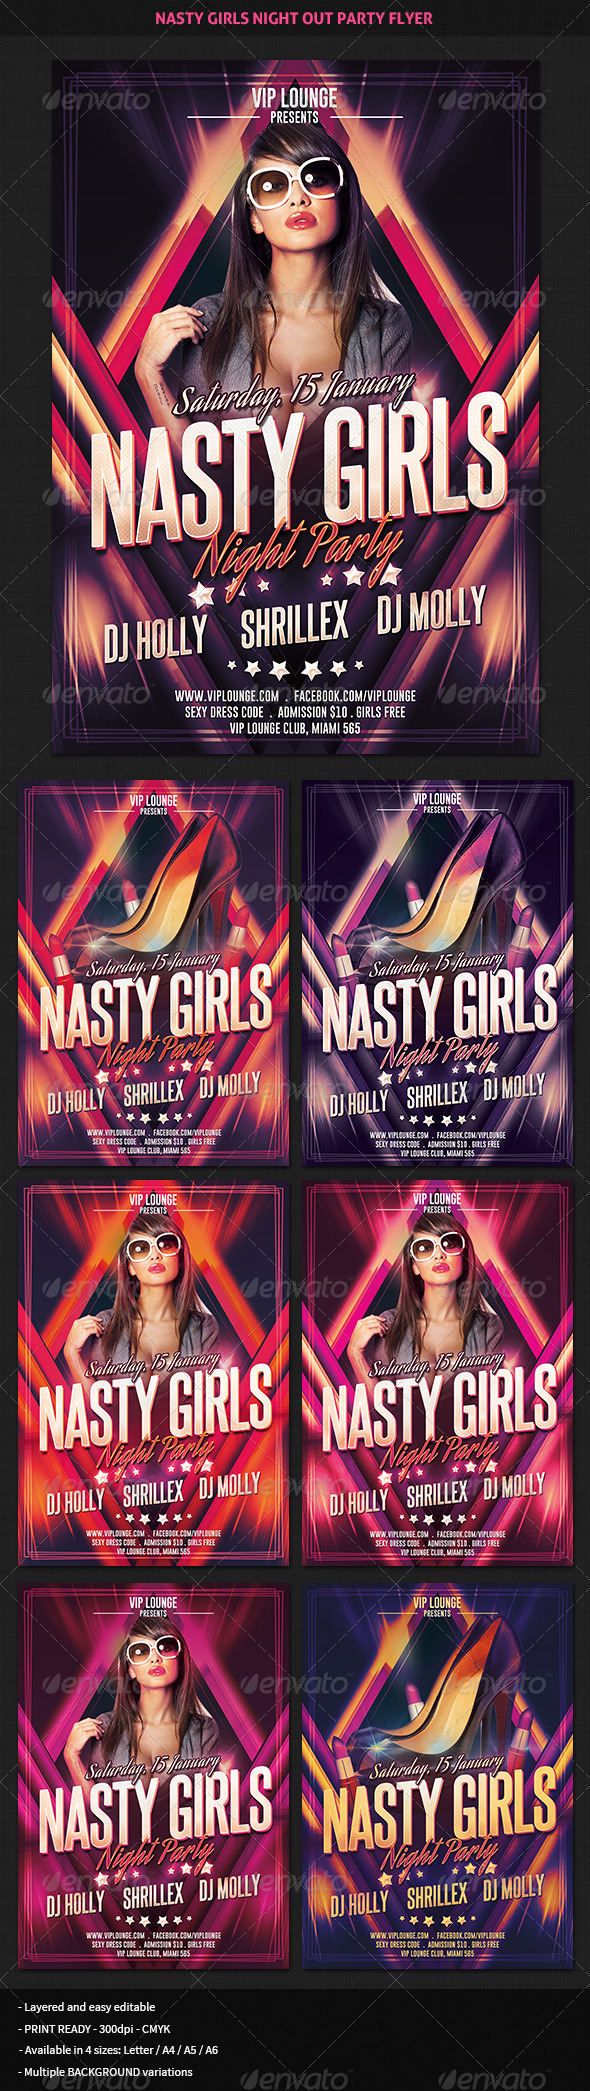 Nasty Girls Night Out Party Flyer - Clubs & Parties Events